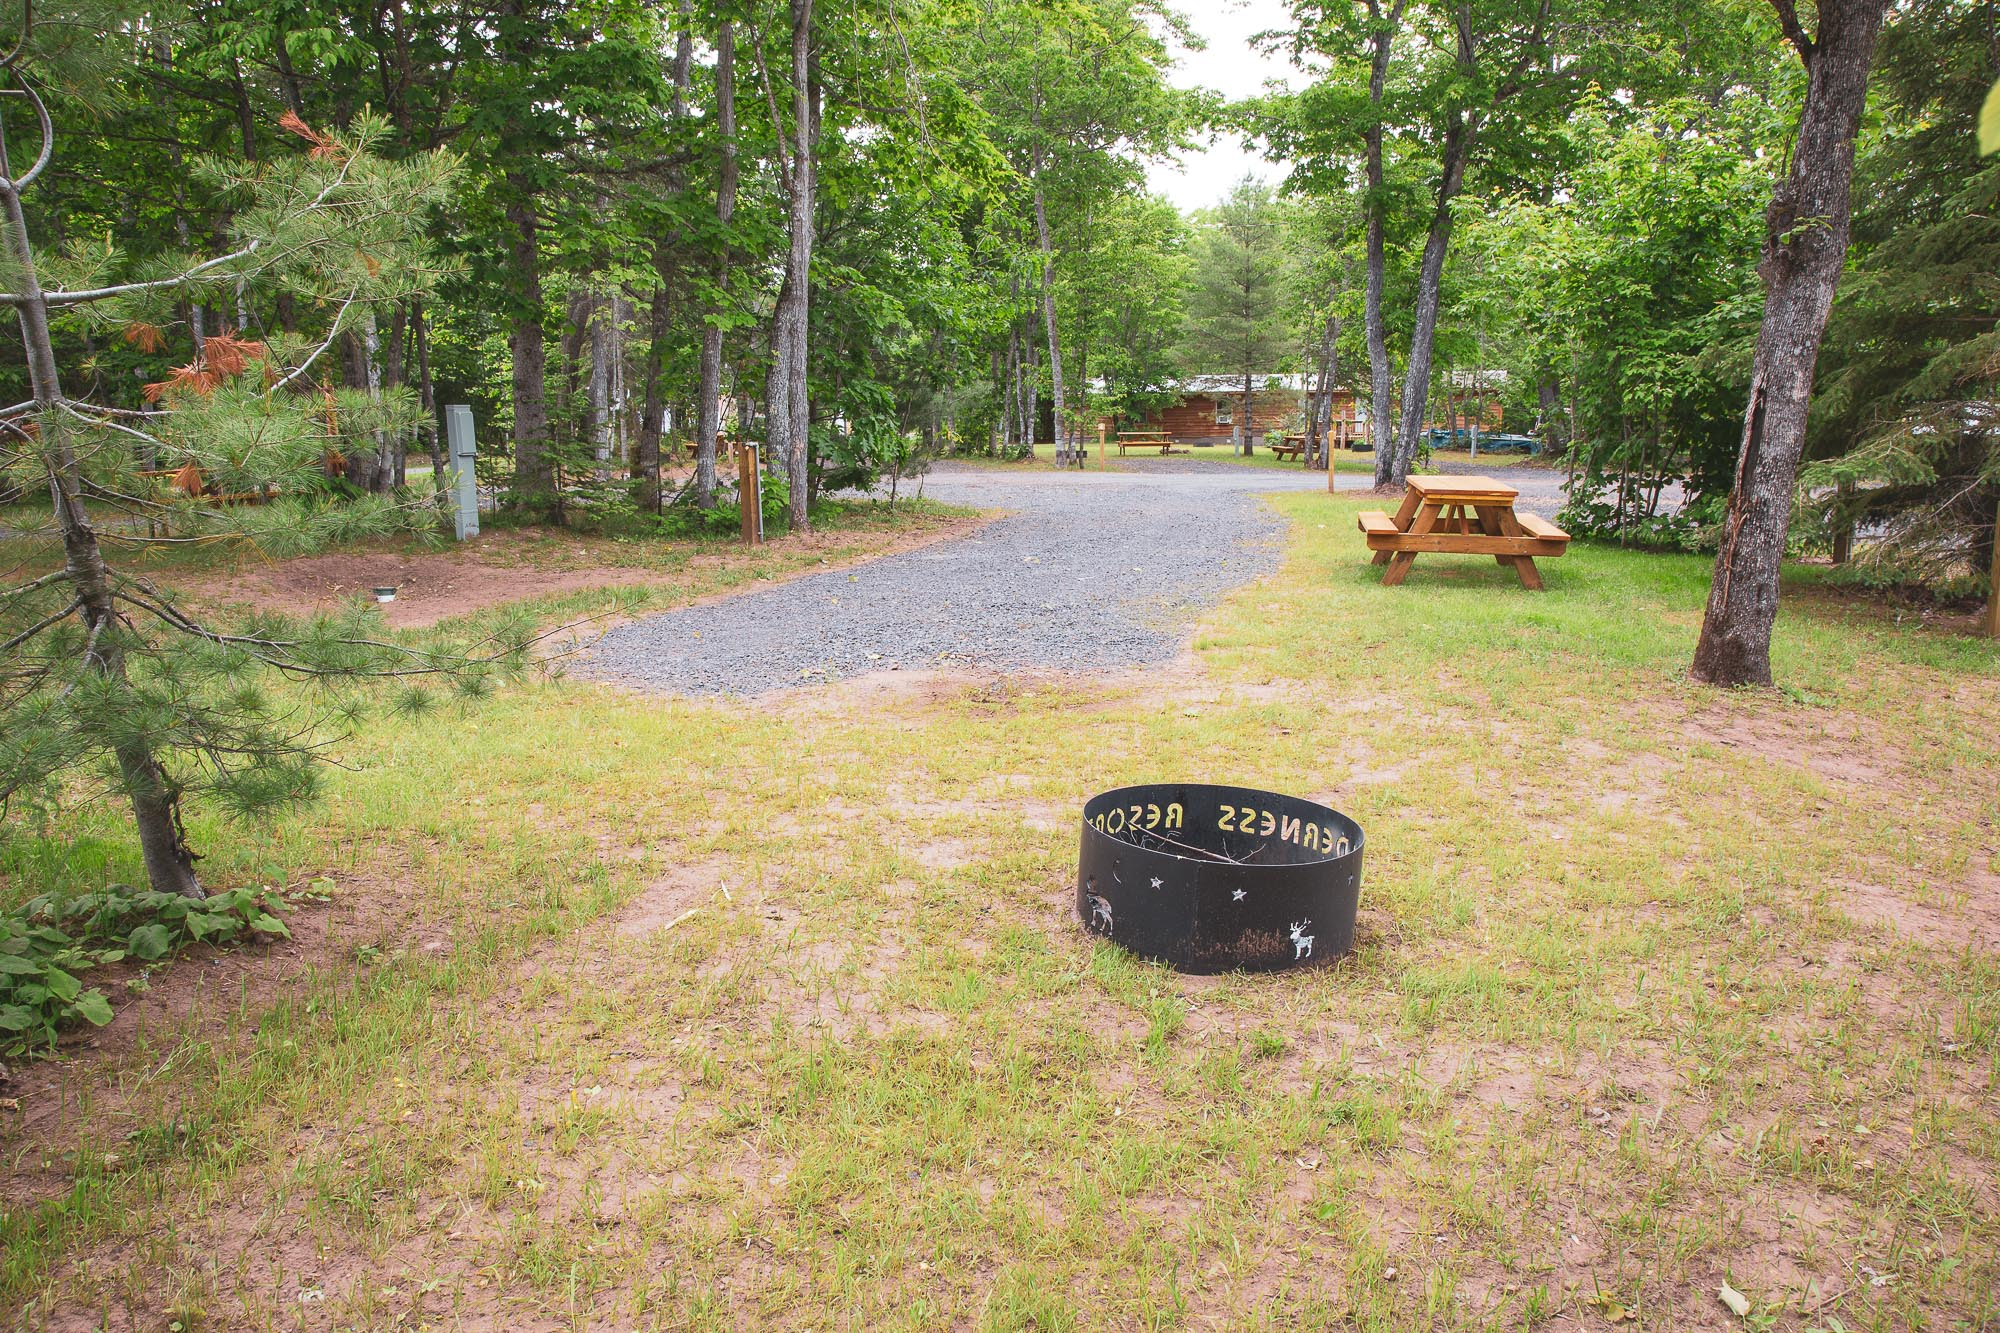 Photo of Campground Site 3 at the Wilderness Resort in Lac La Belle Michigan